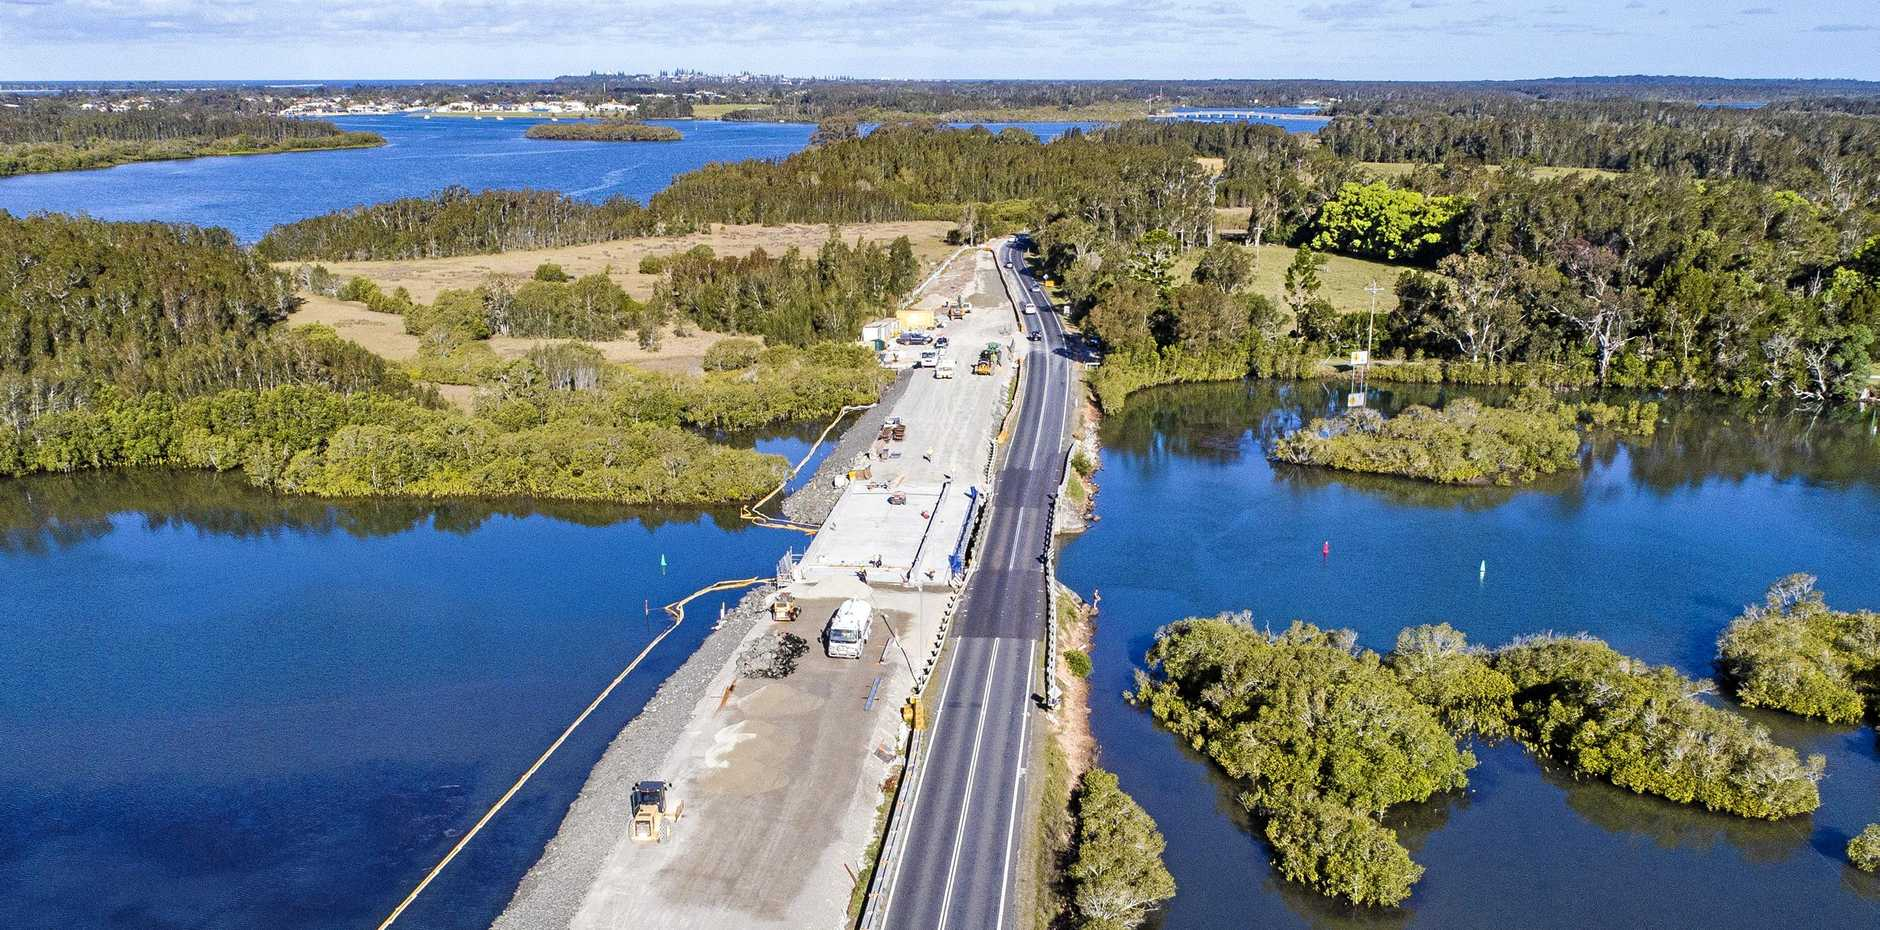 An aerial view of a work-in-progress of the construction of a new bridge at Romiaka Channel, near Yamba.